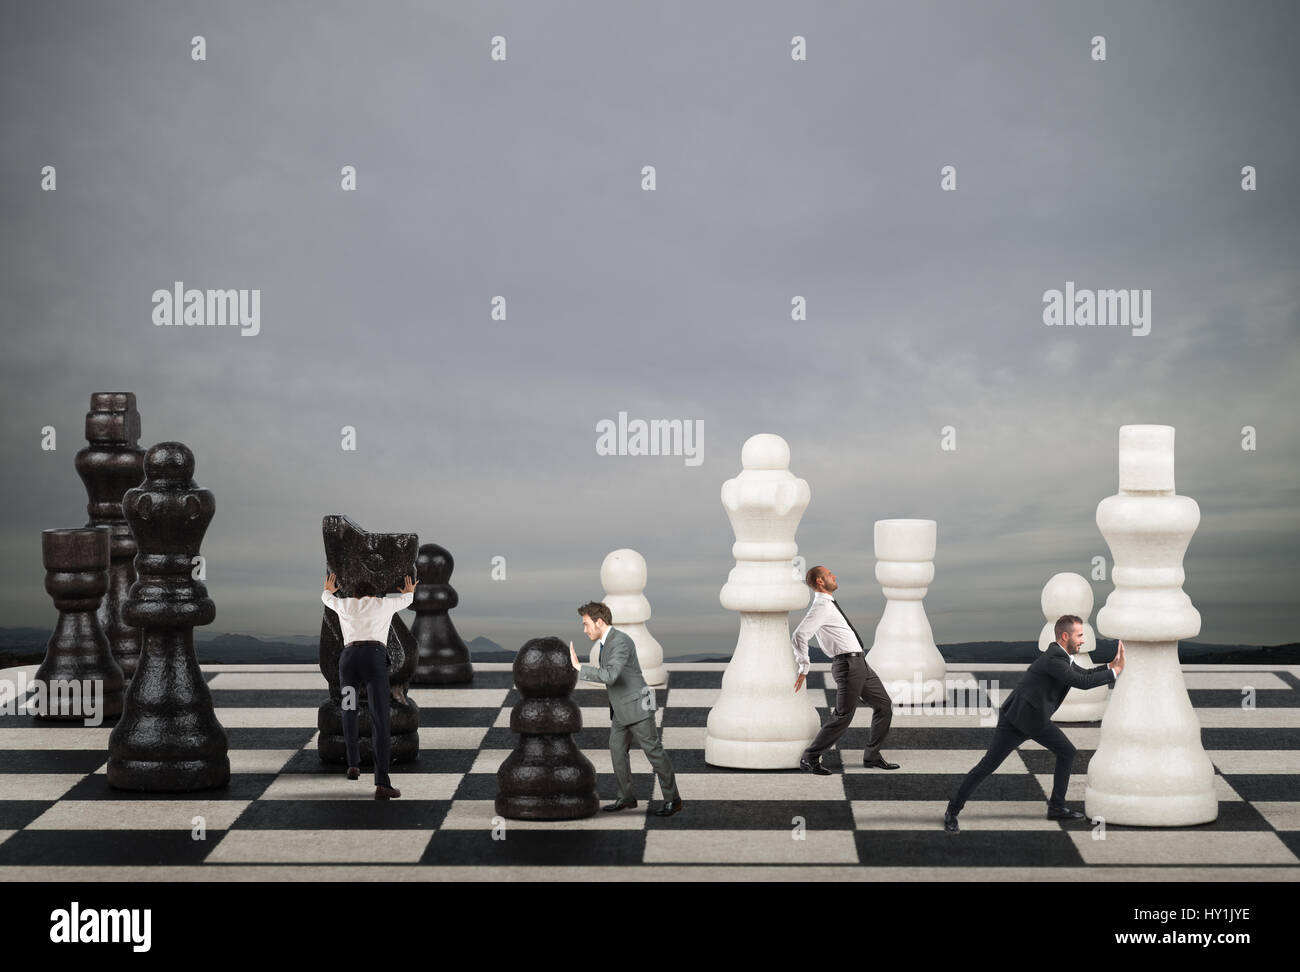 Strategy and tactics in business - Stock Image